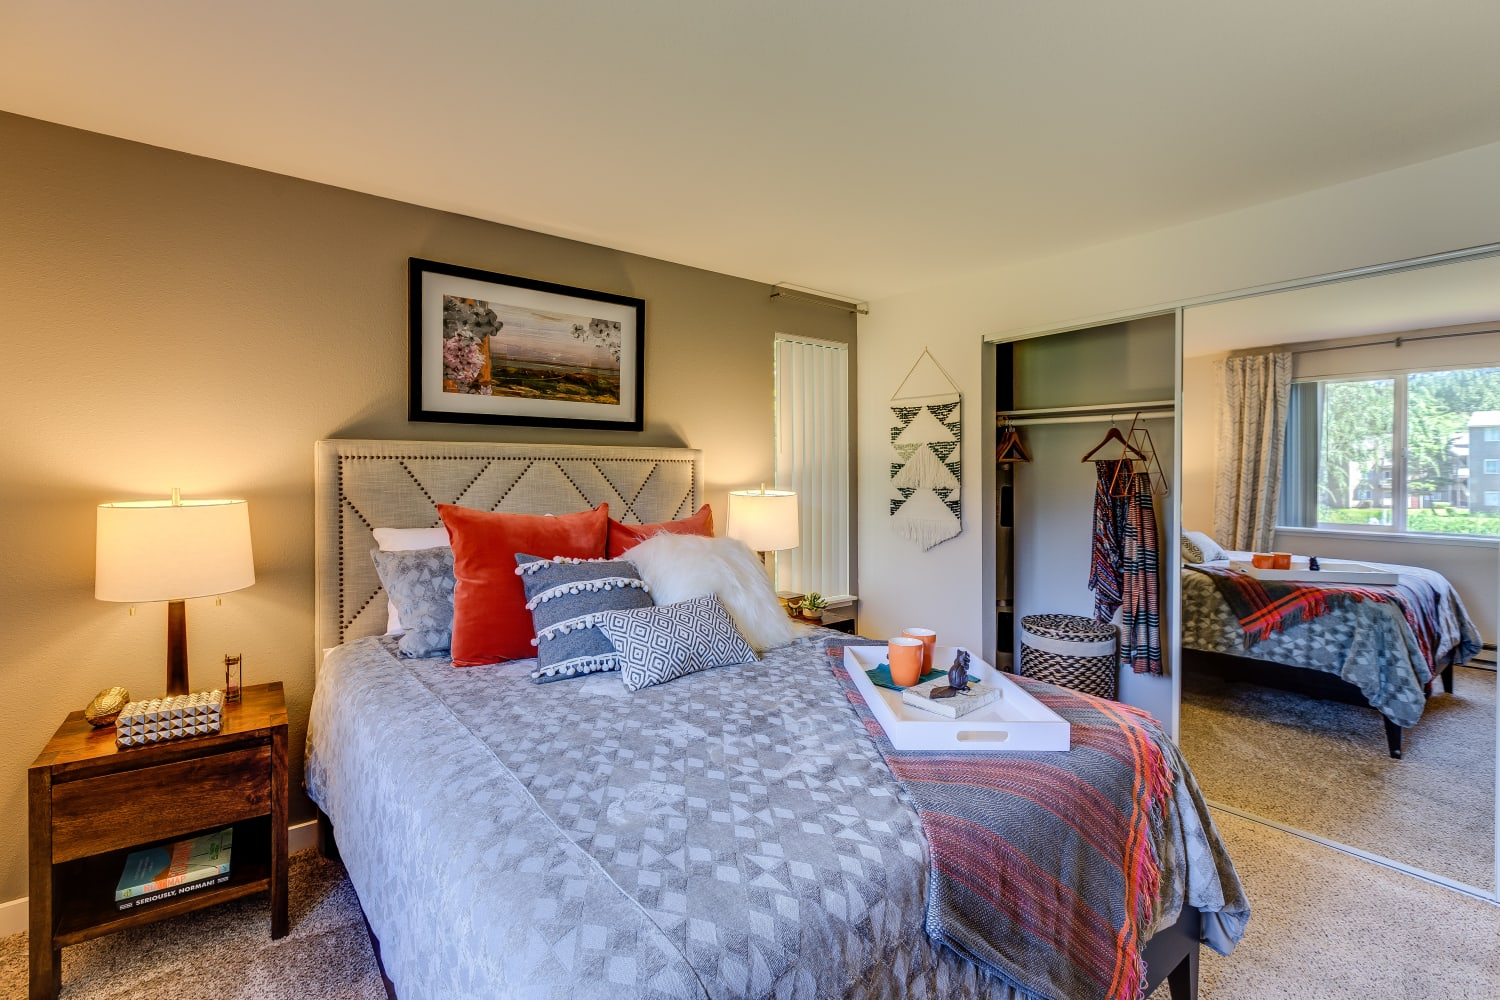 A bedroom with a mirrored cabinet door and large window at The Preserve at Forbes Creek in Kirkland, Washington